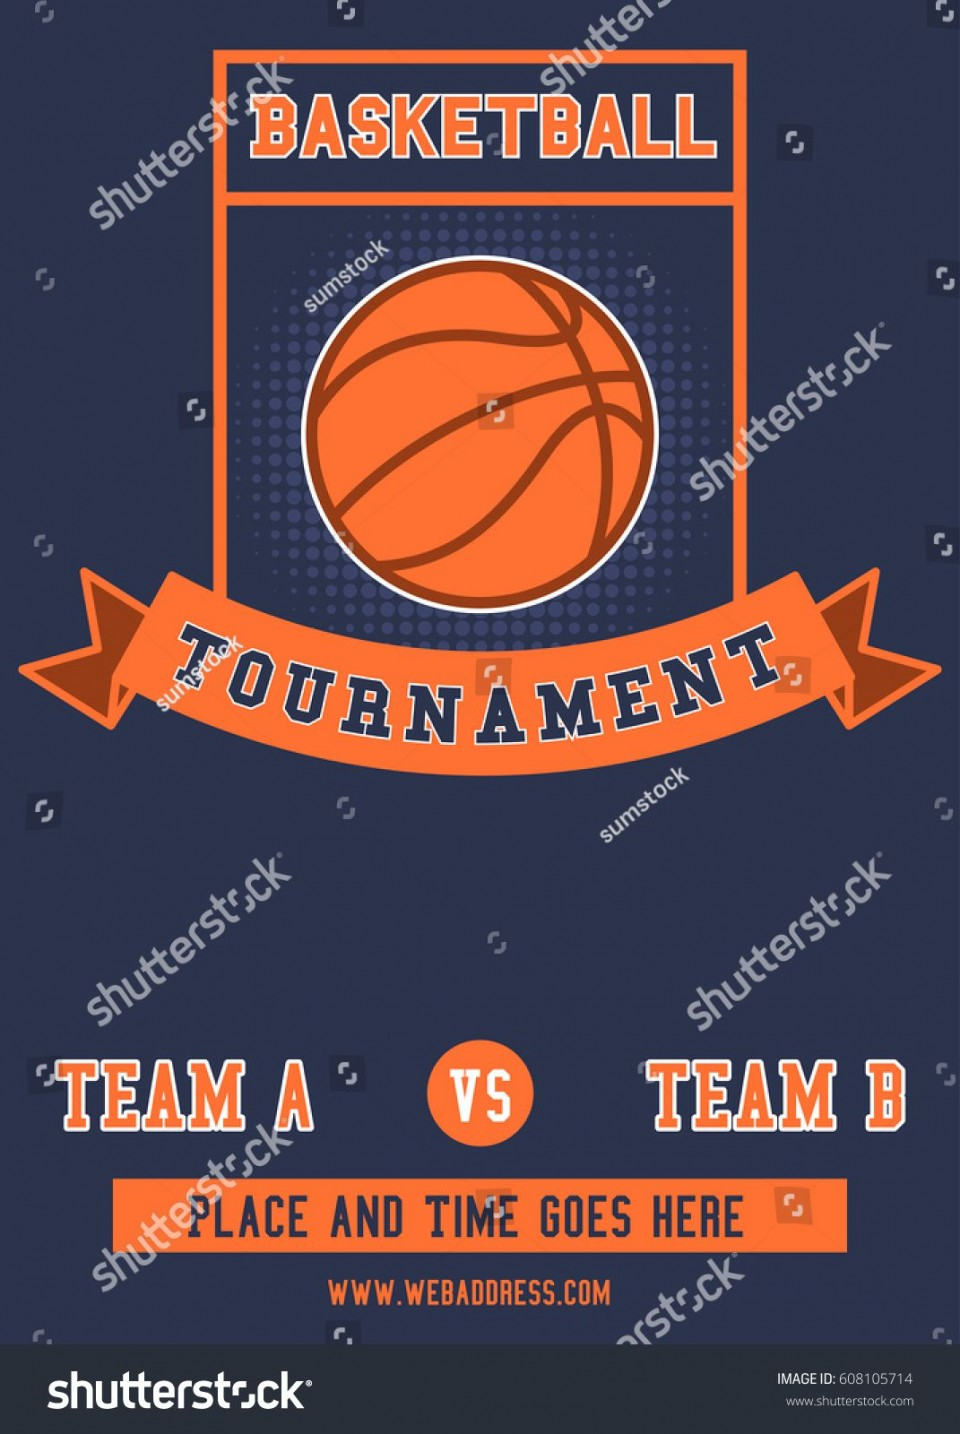 010 Imposing Basketball Tournament Flyer Template High Definition  3 On Free960